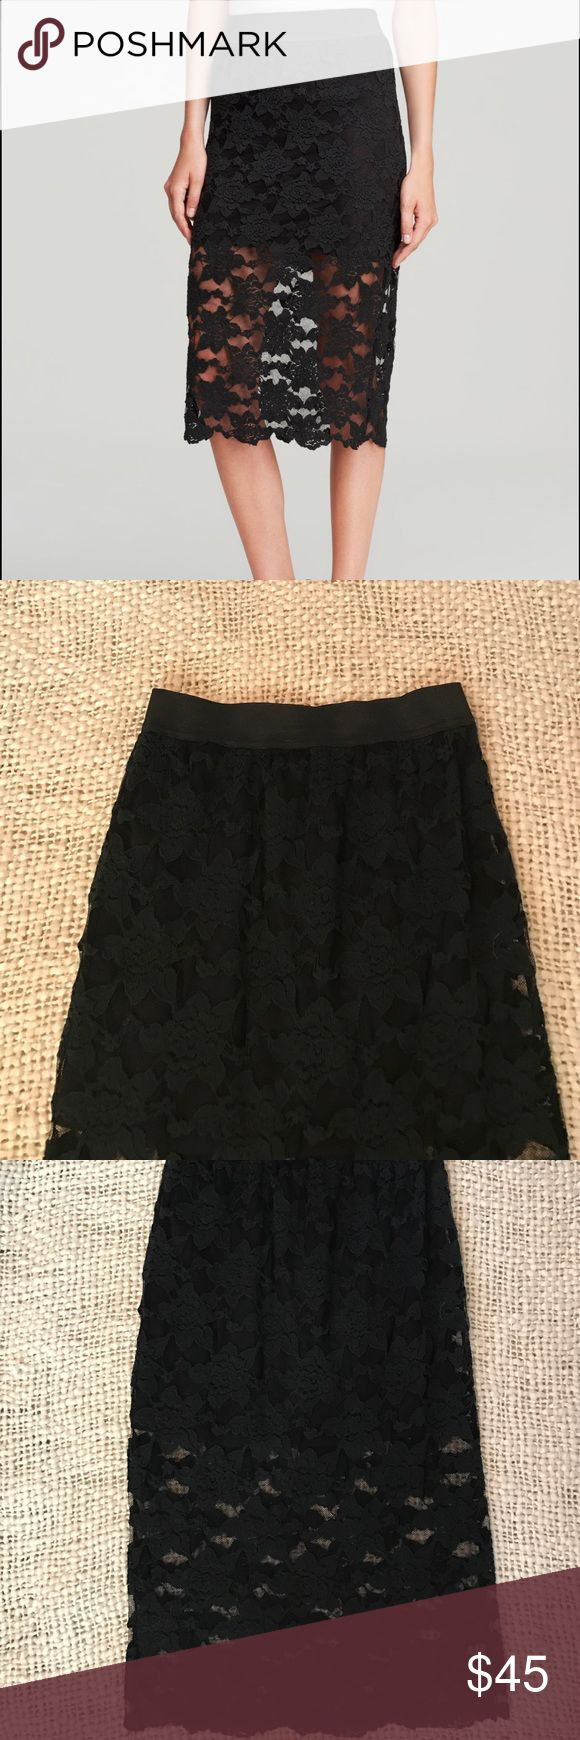 "Free People black lace pencil skirt size S Adorable Free People lace pencil skirt. Length is 28.5"" long, lace liner is almost 16"" long. Good used condition. Free People Skirts Pencil"